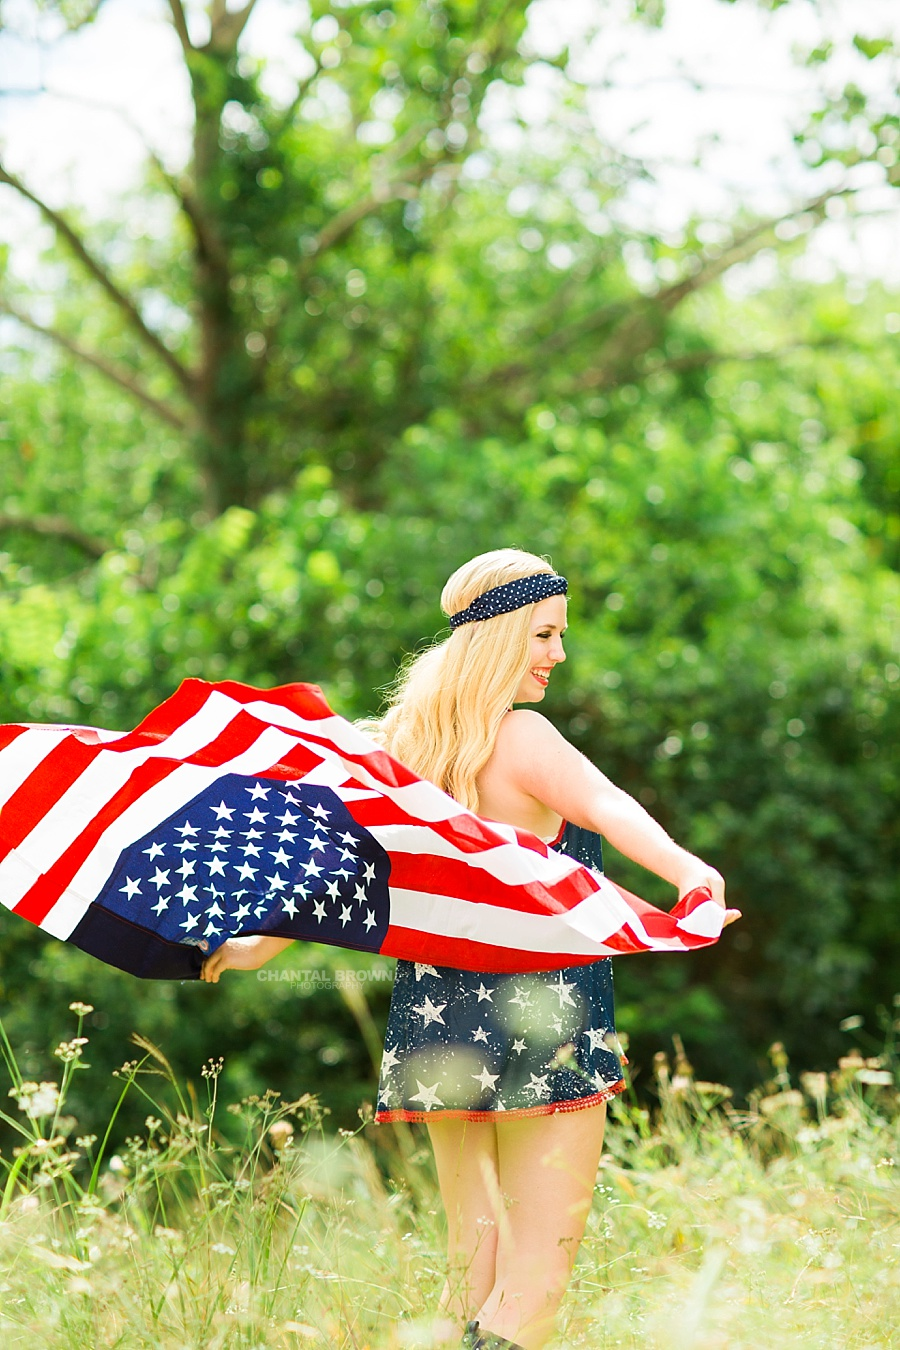 Holding the real American flag outdoor. All American high school by Chantal Brown Photography.